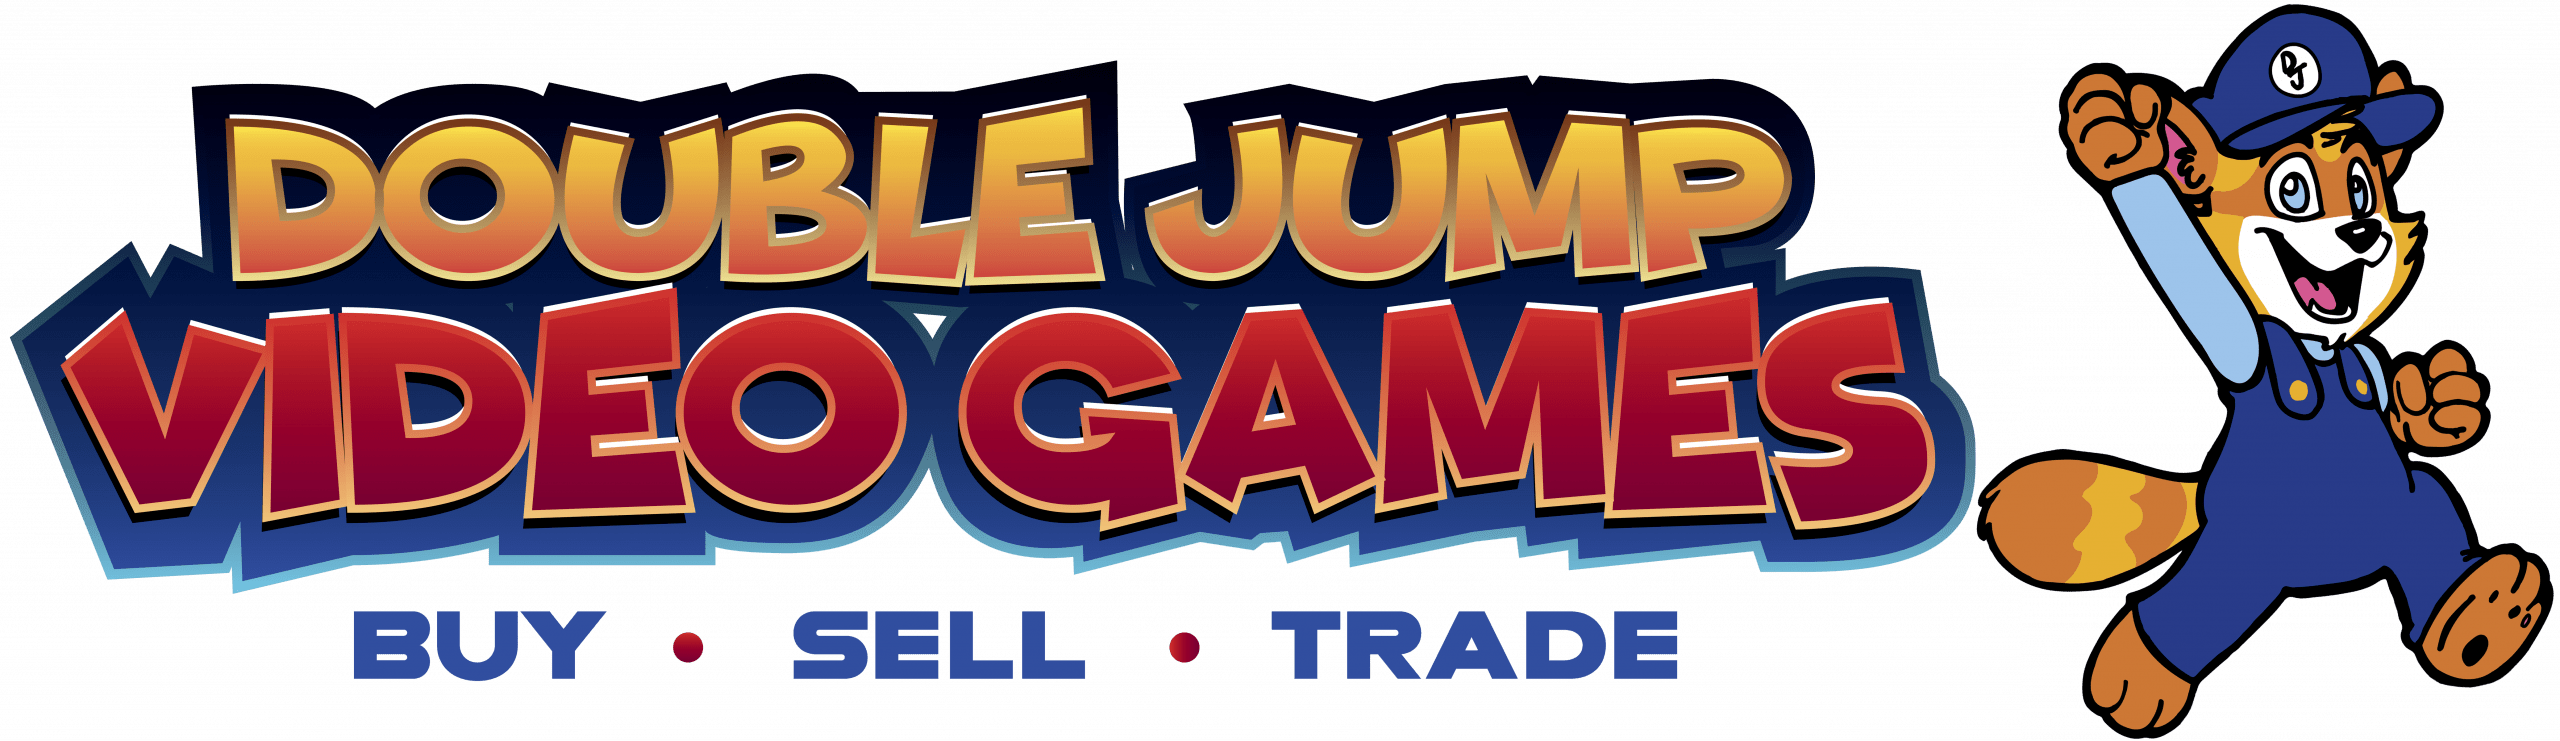 Double Jump Video Games